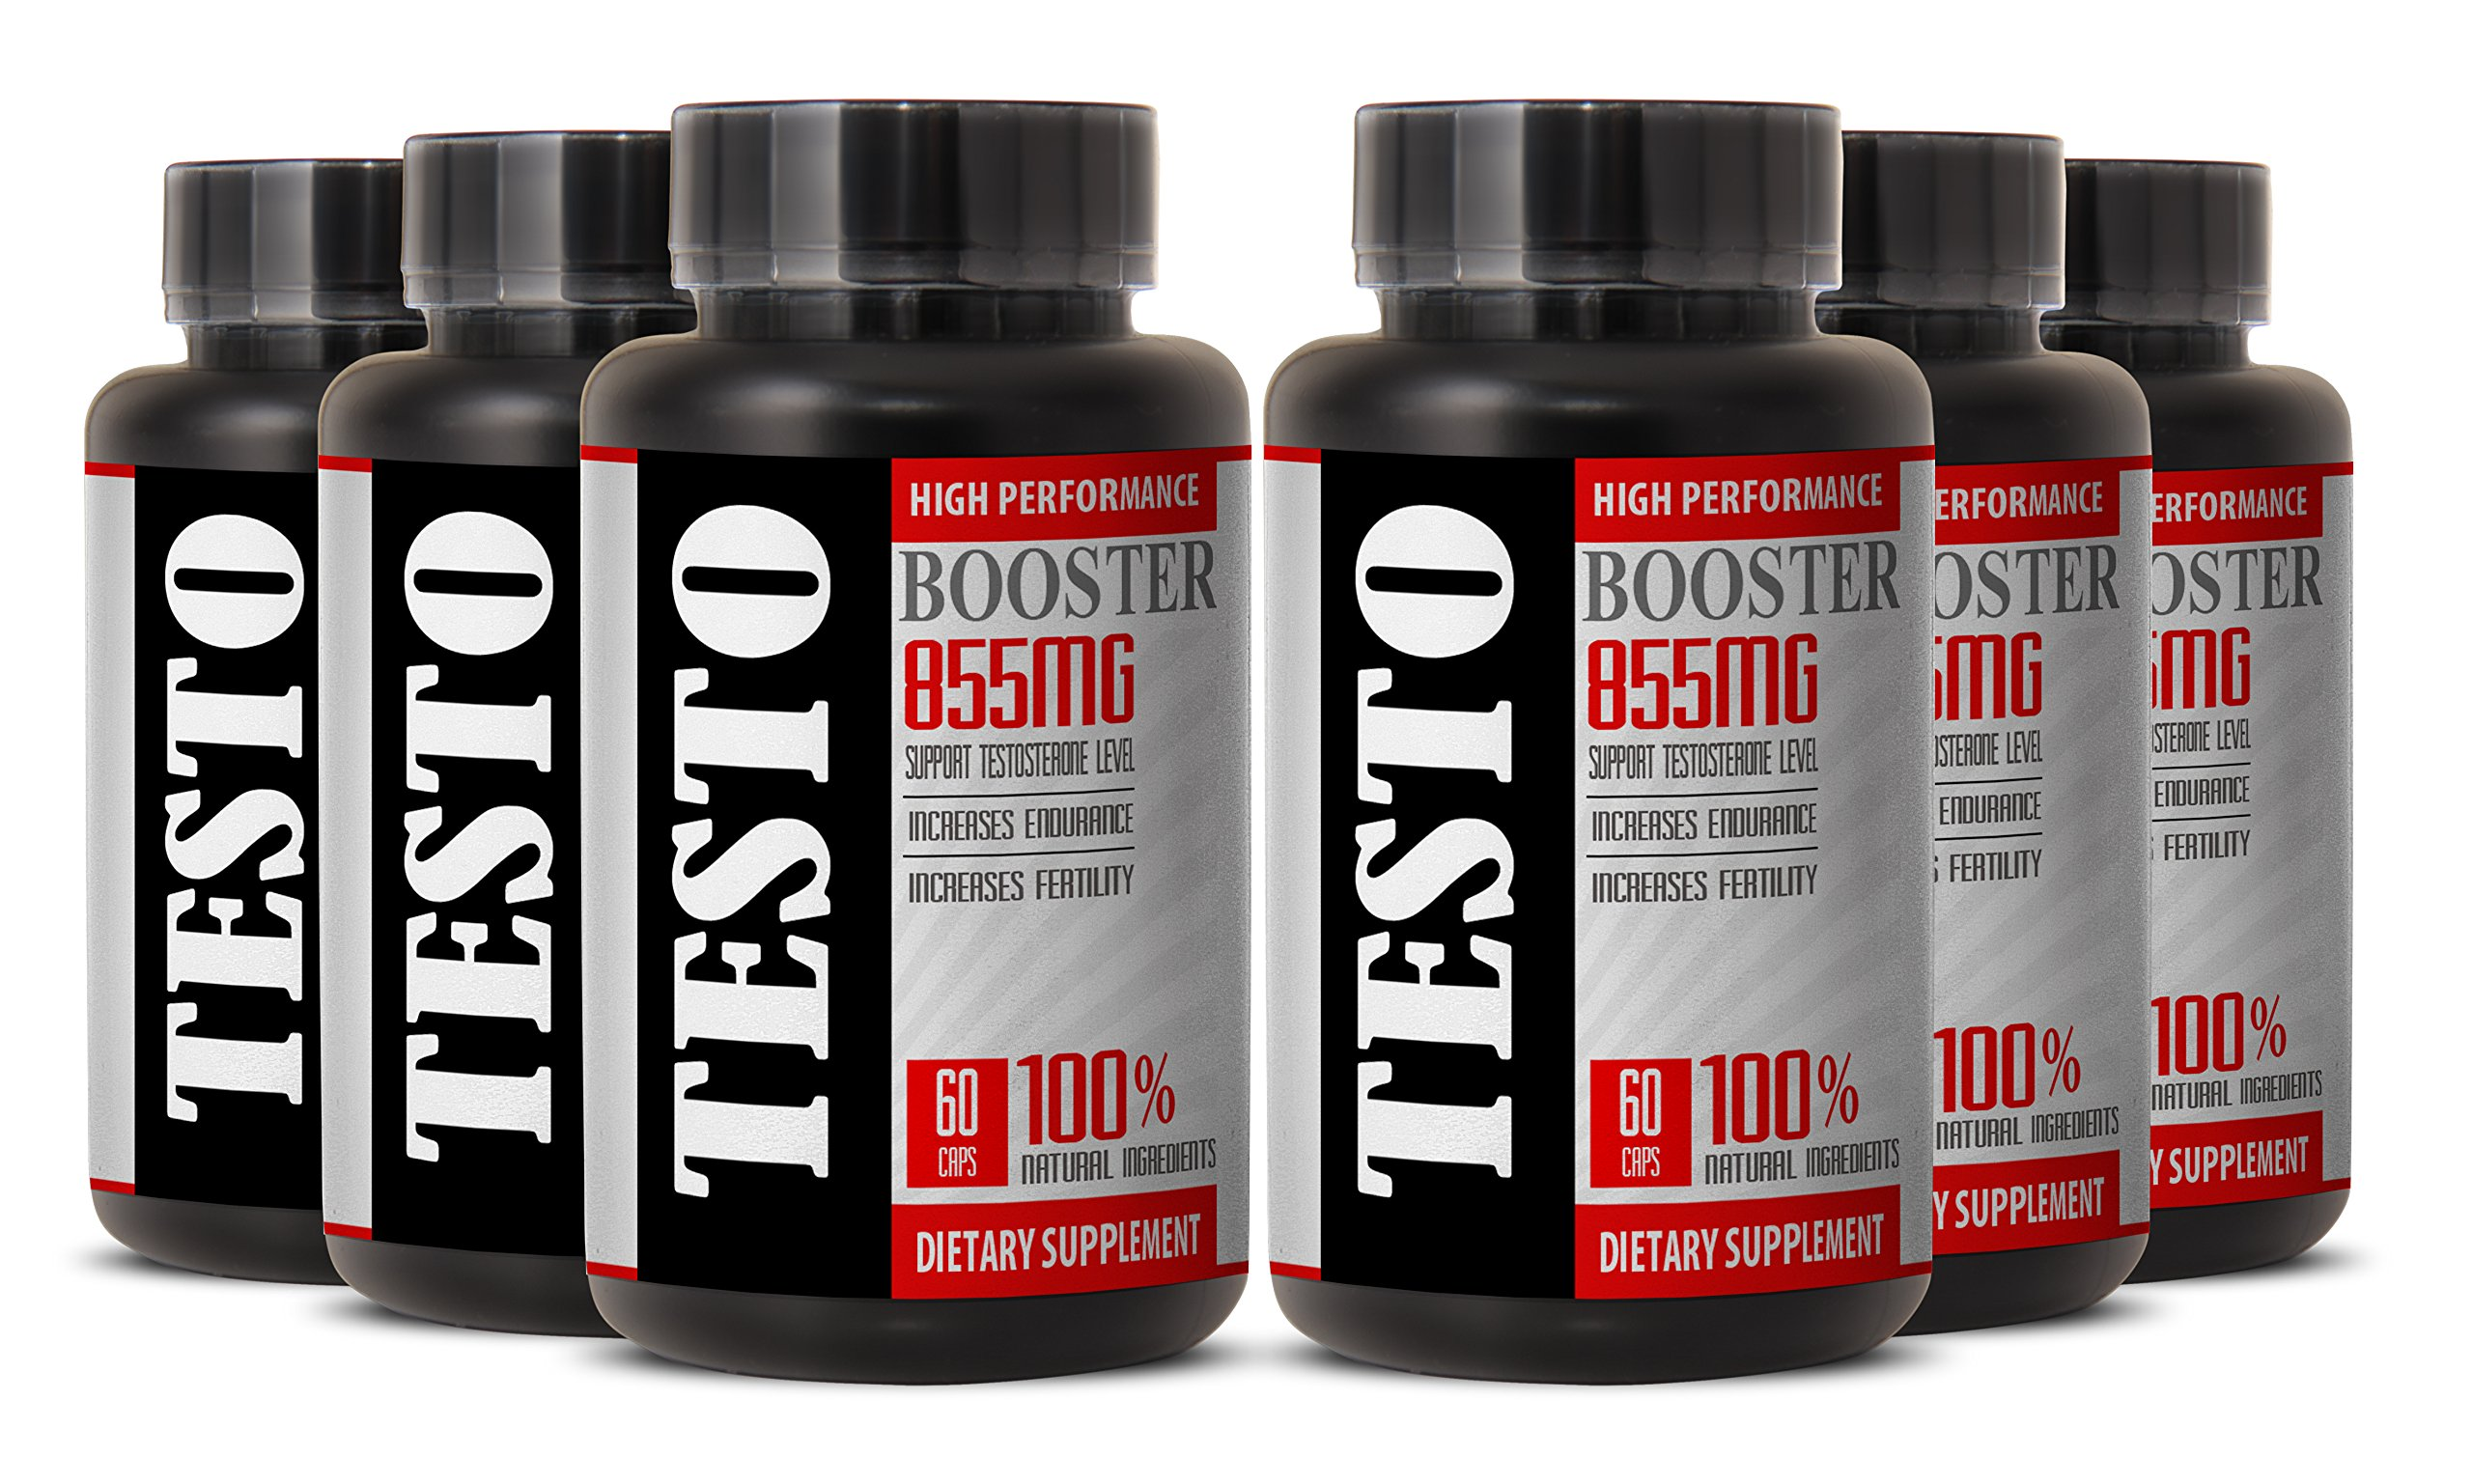 Testosterone weight loss for men - TESTO BOOSTER 855MG - libido support (6 Bottles)